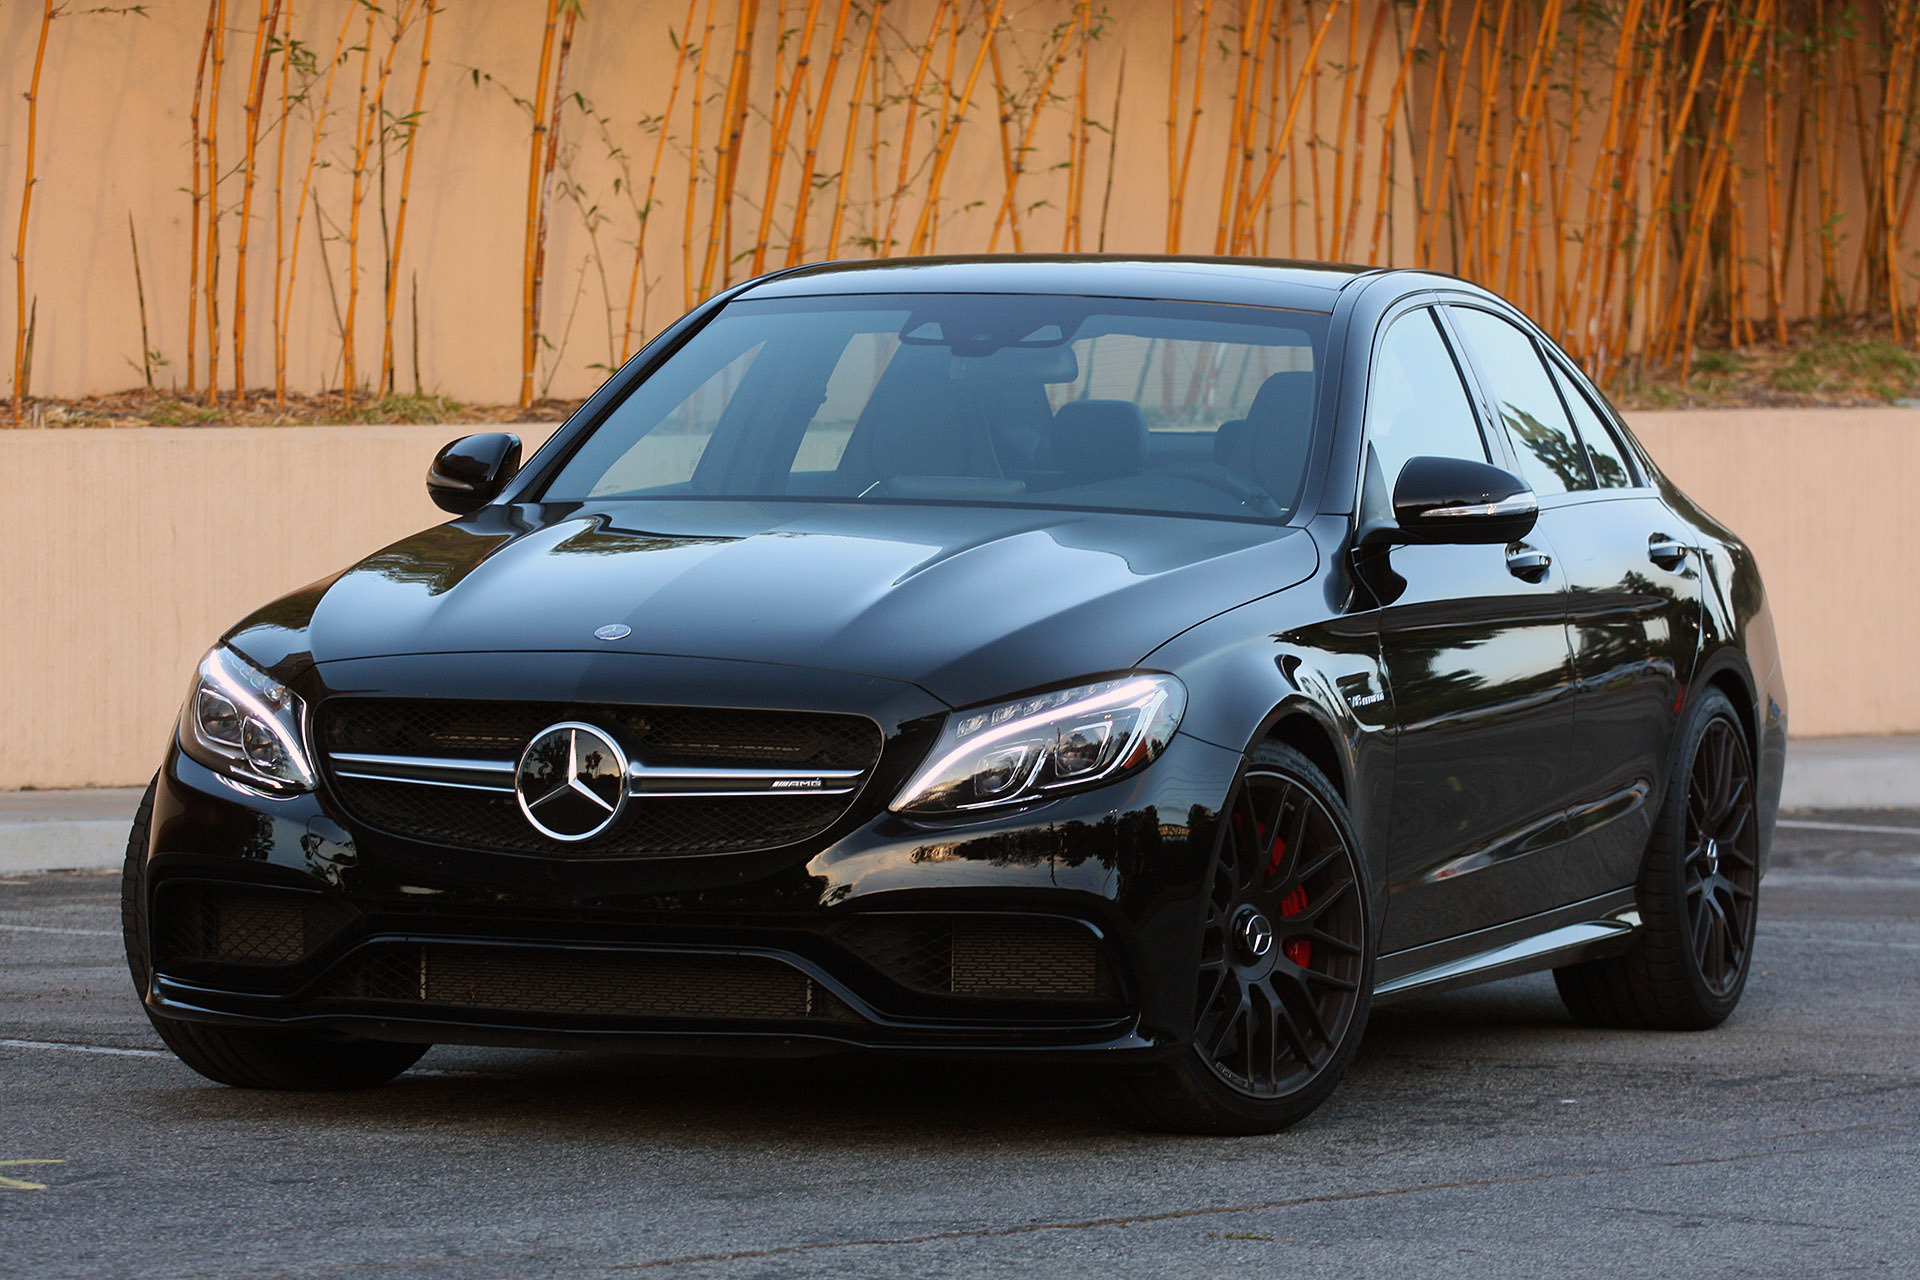 Mercedes amg c63 s sedan dream spec black on black for Mercedes benz c63 amg black edition